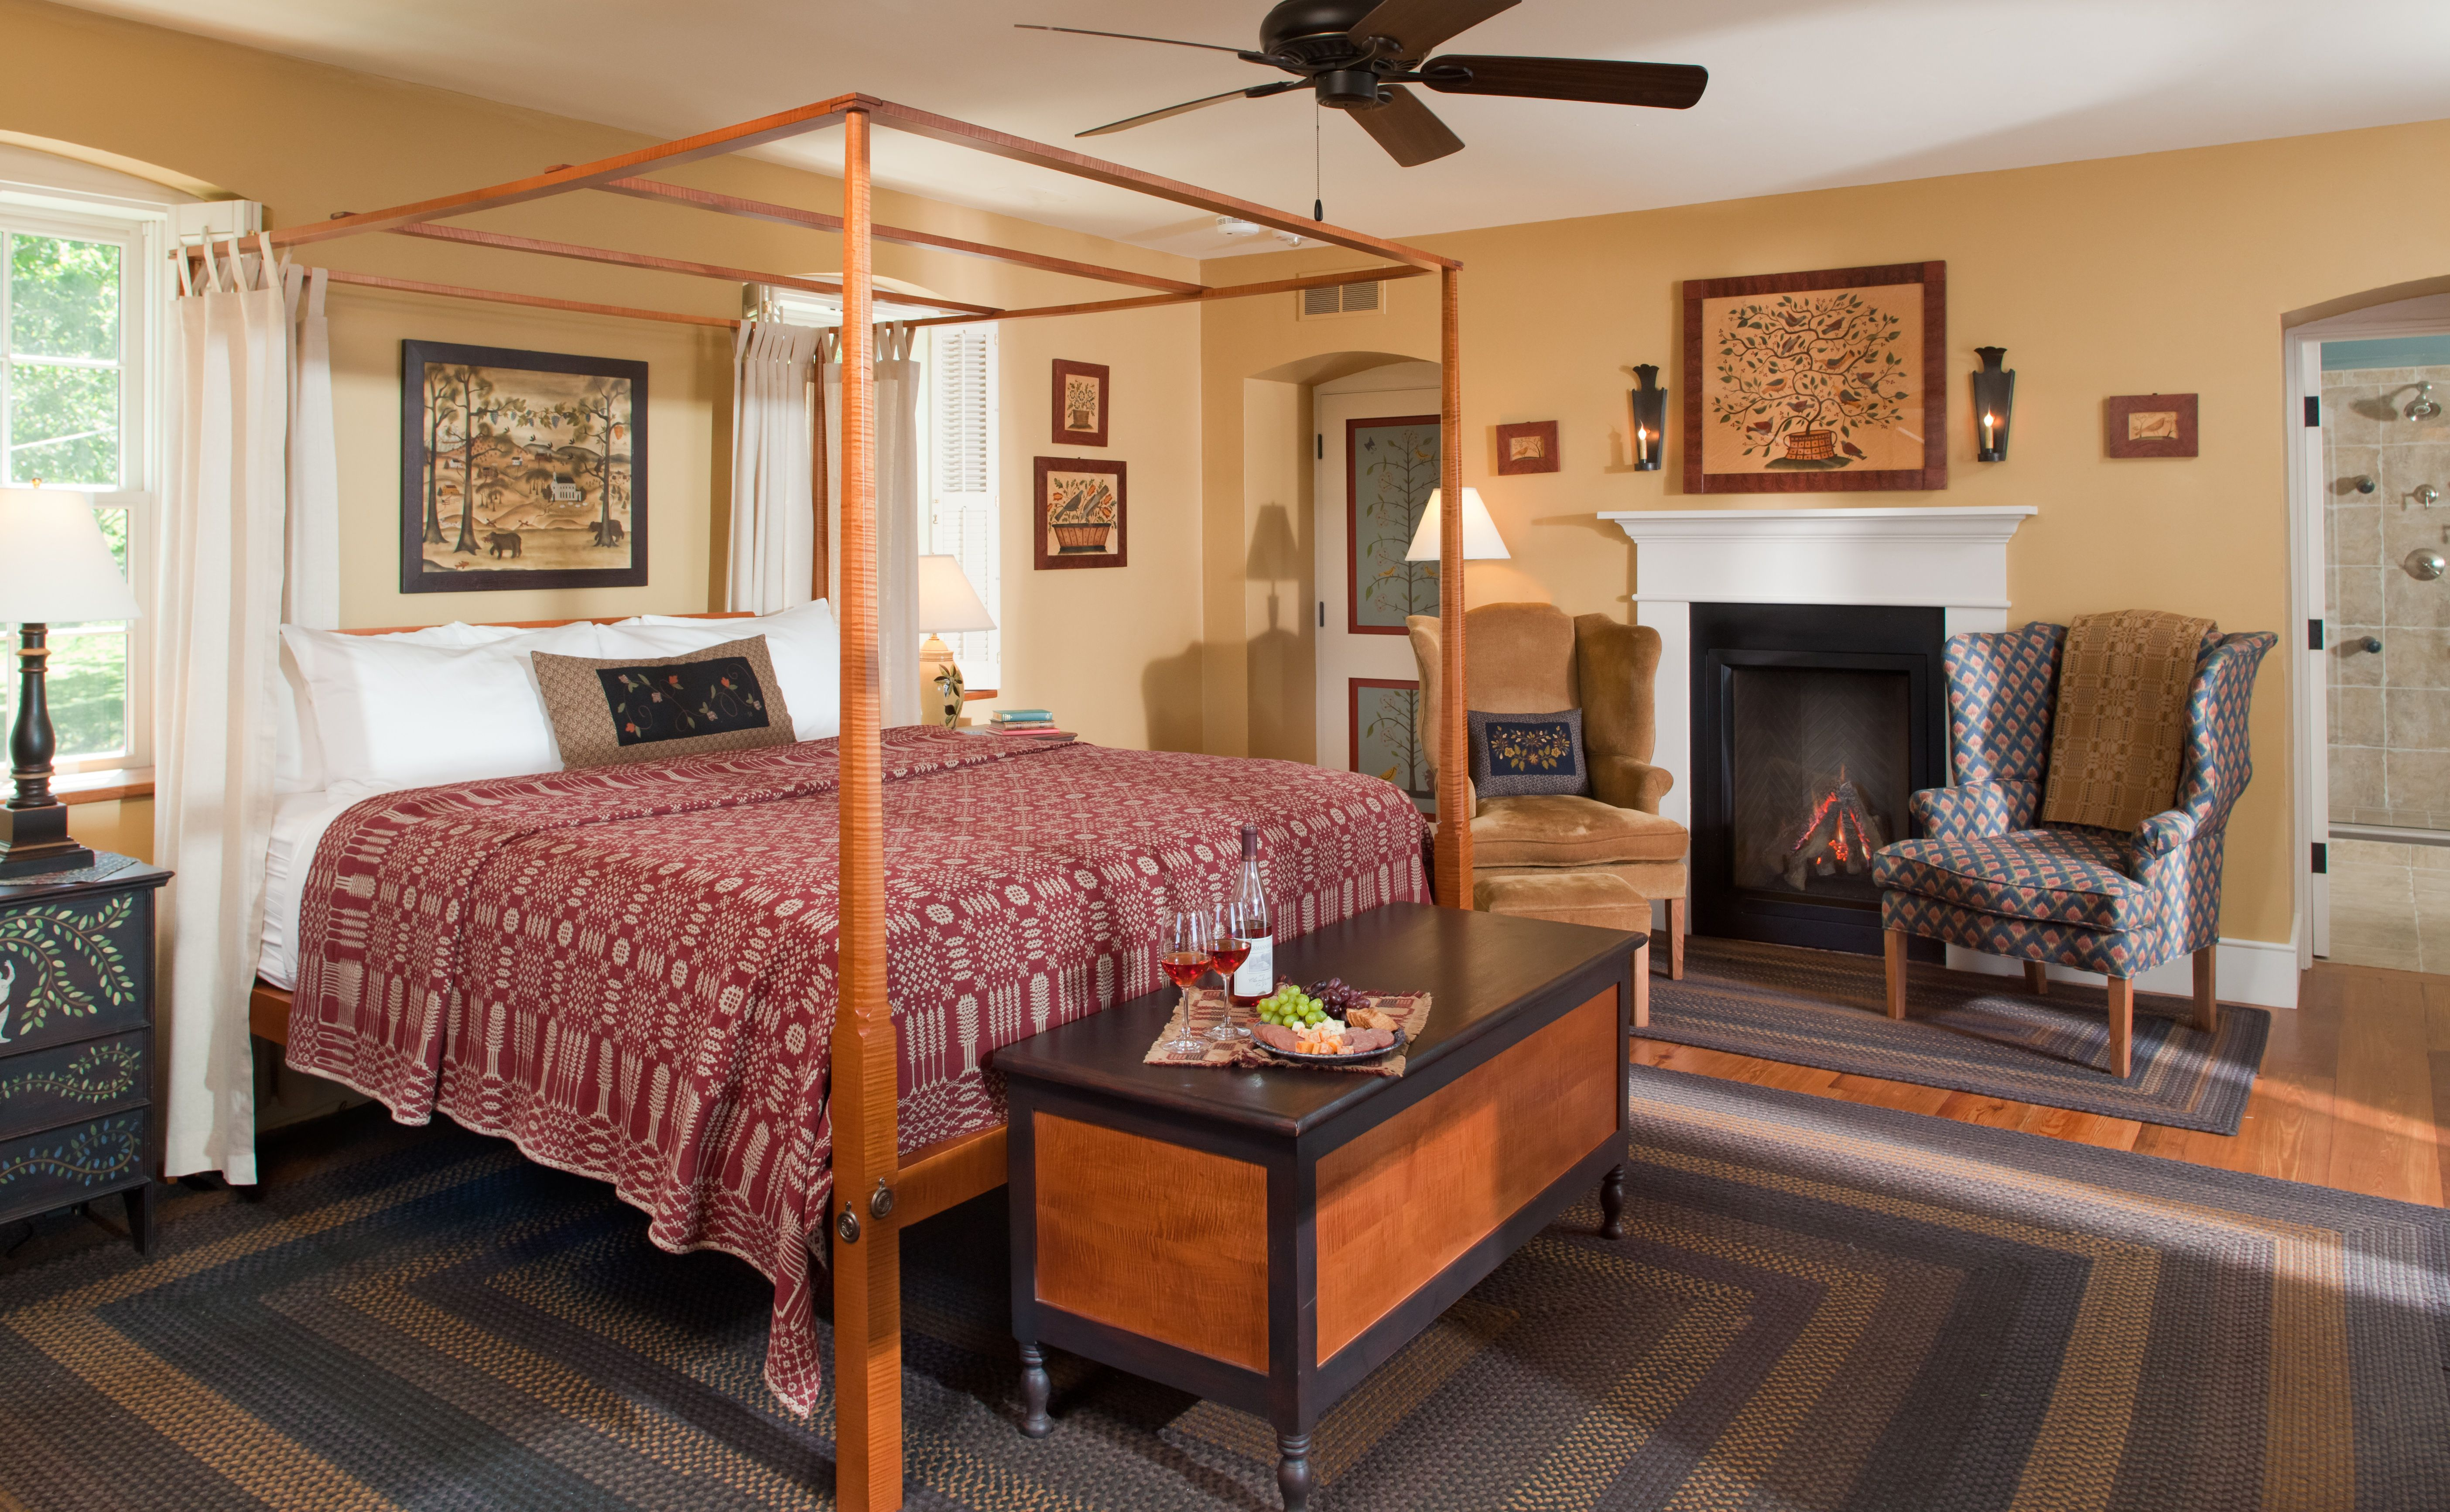 Our Luxury Paradise Suite features great views of the